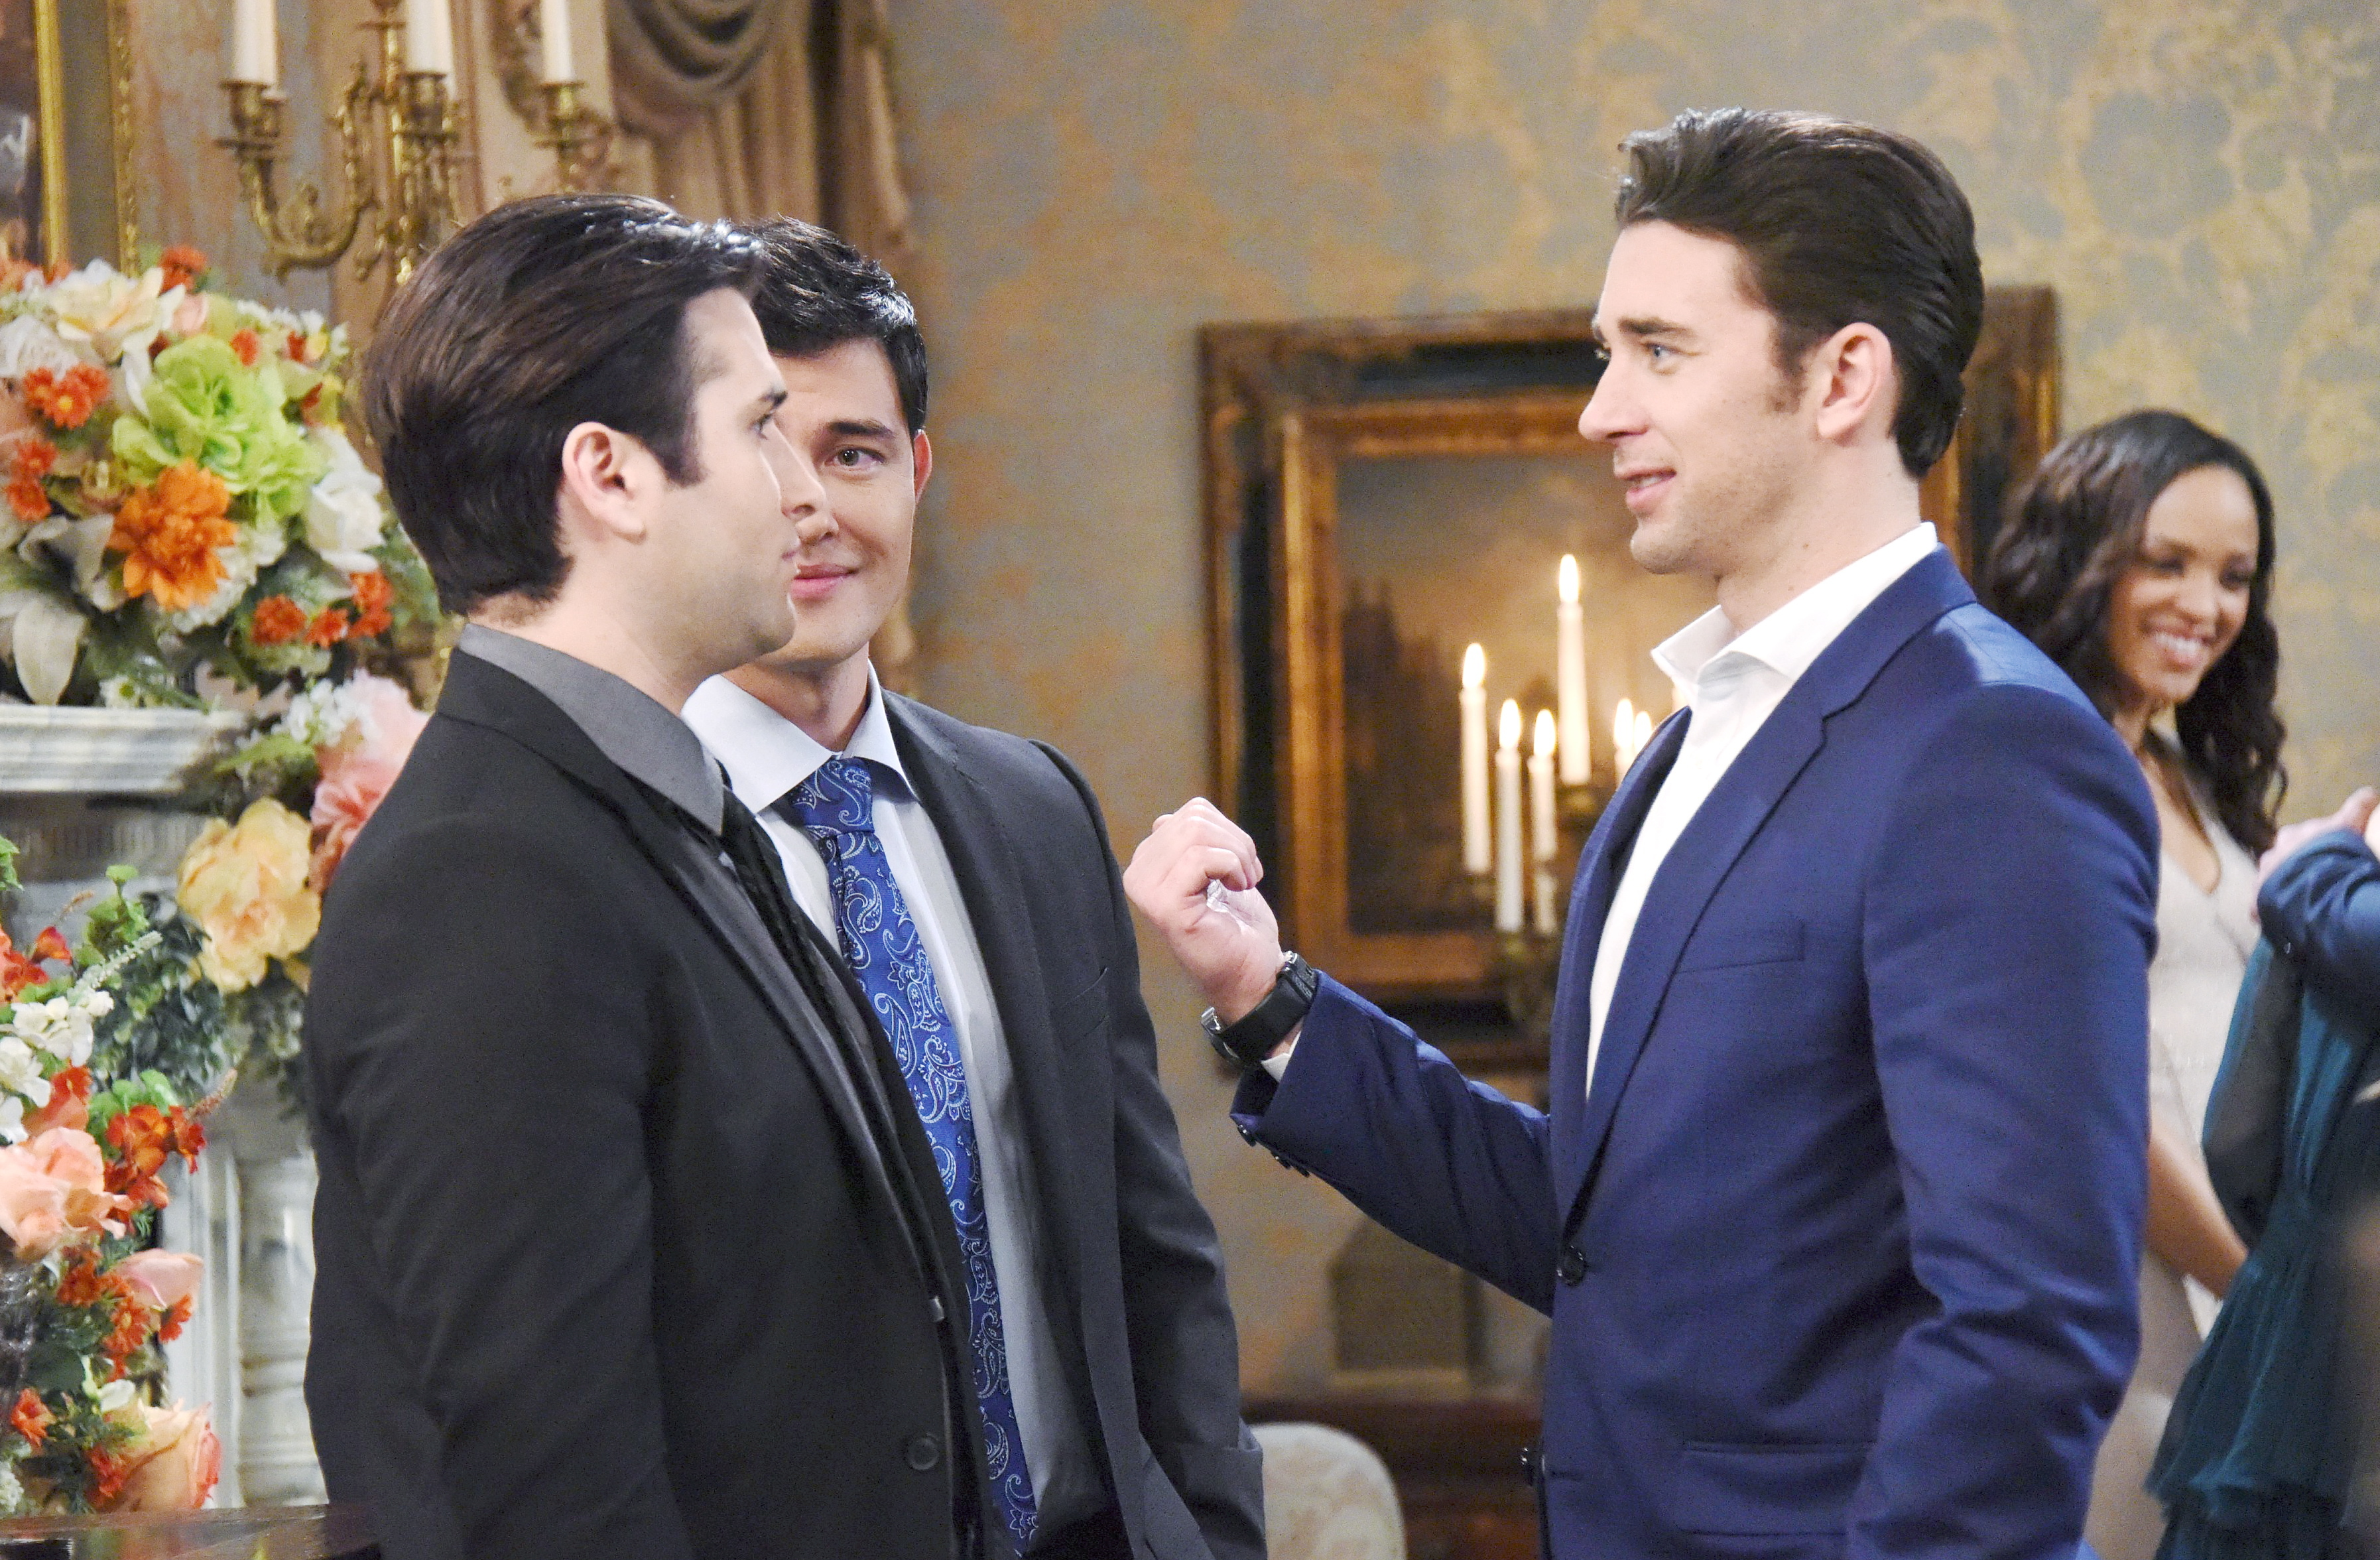 DAYS OF OUR LIVES EPISODE 13116